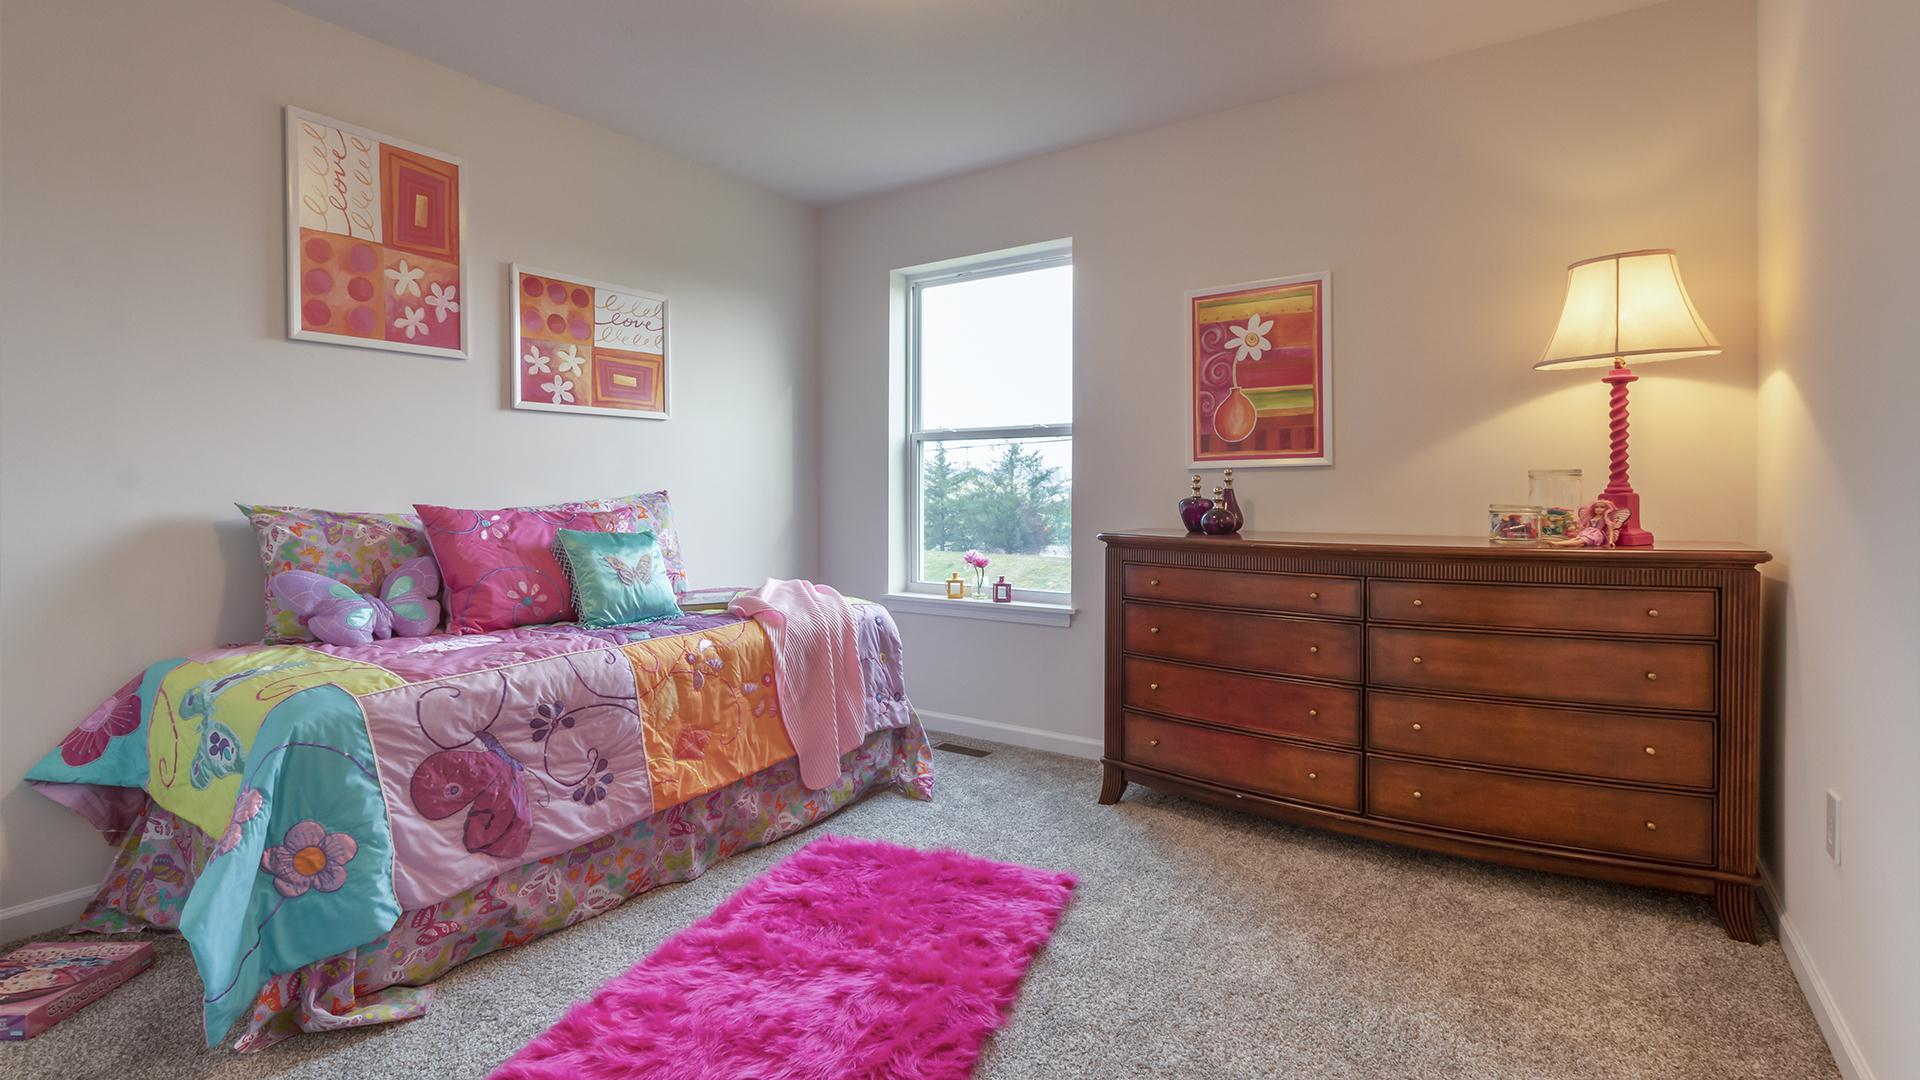 Bedroom featured in the Rosewood By S & A Homes in State College, PA